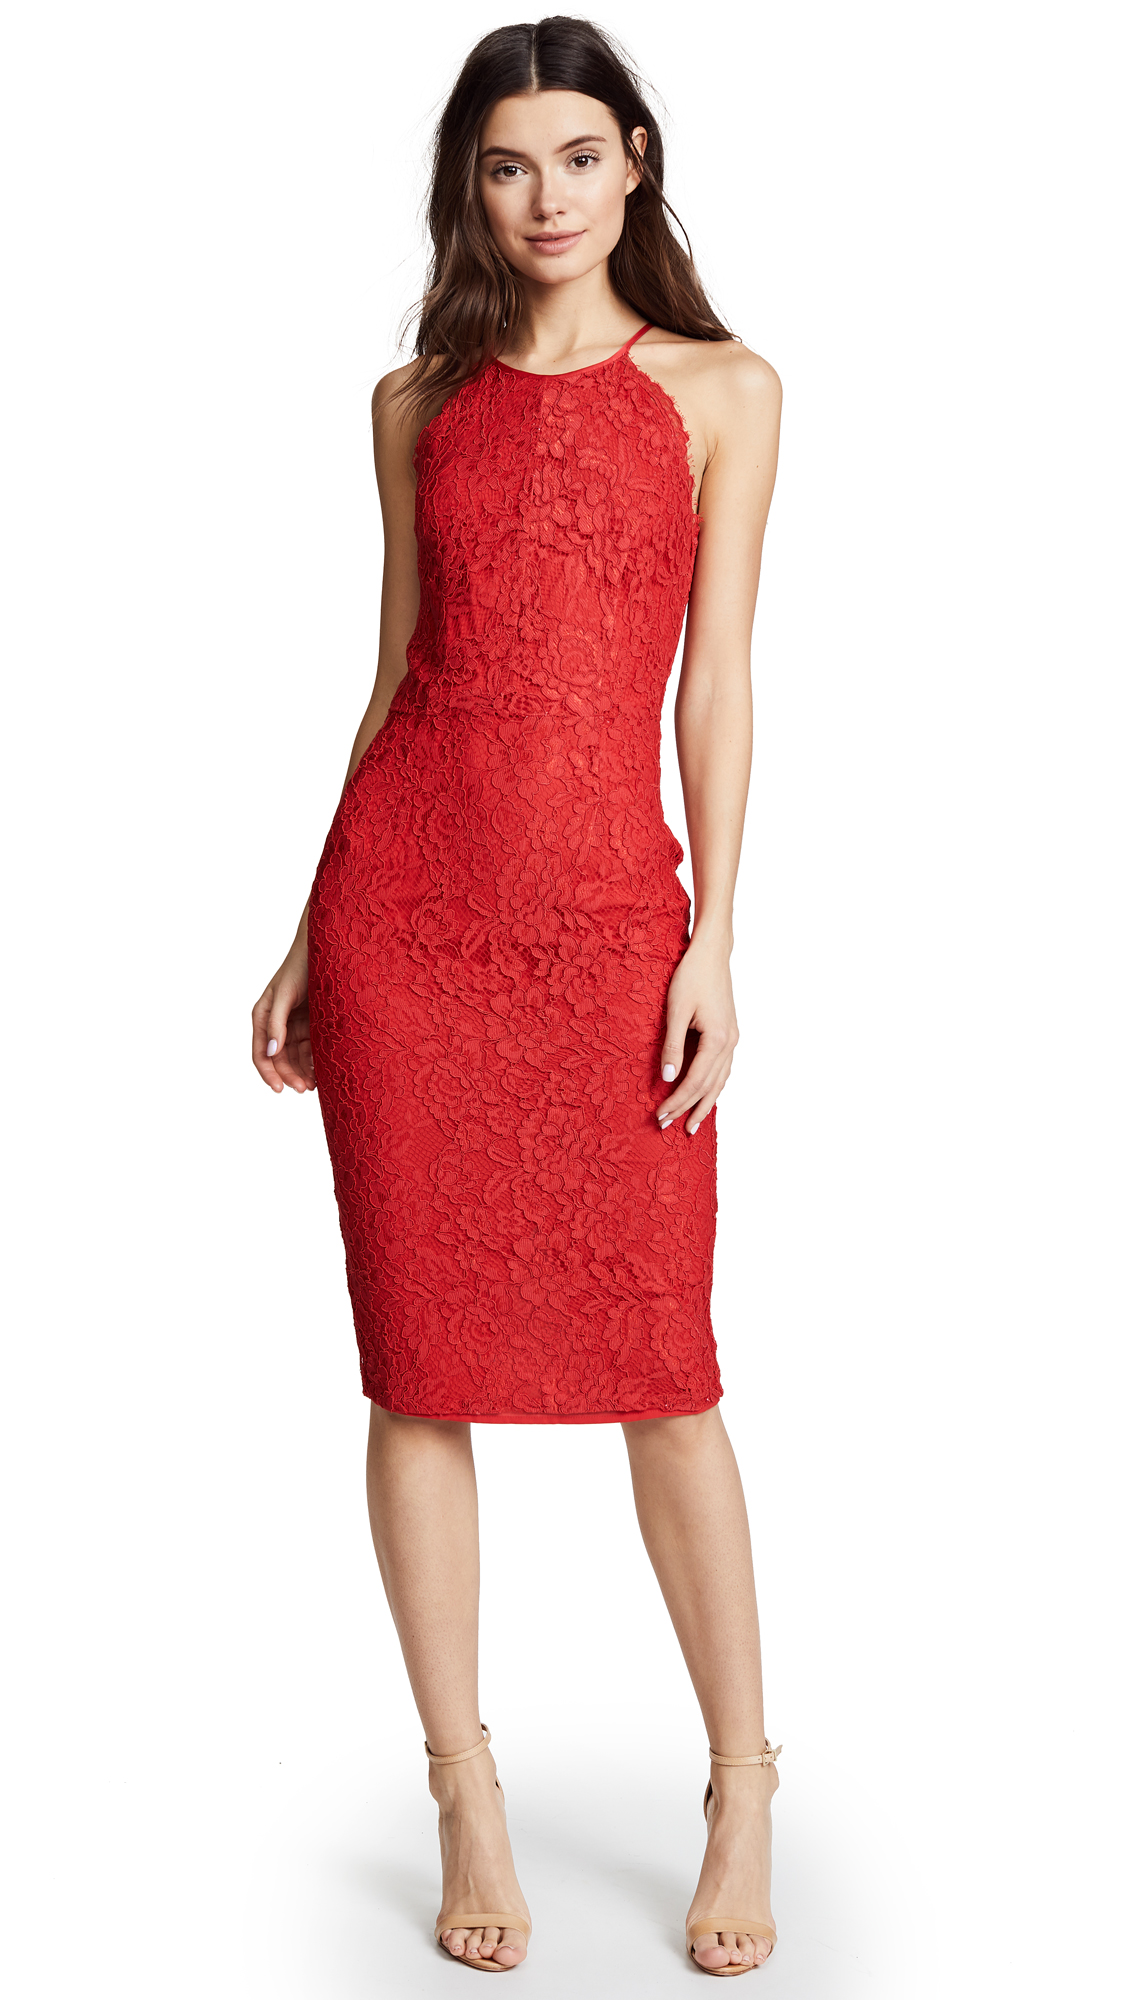 Yumi Kim Save the Date Dress - Red